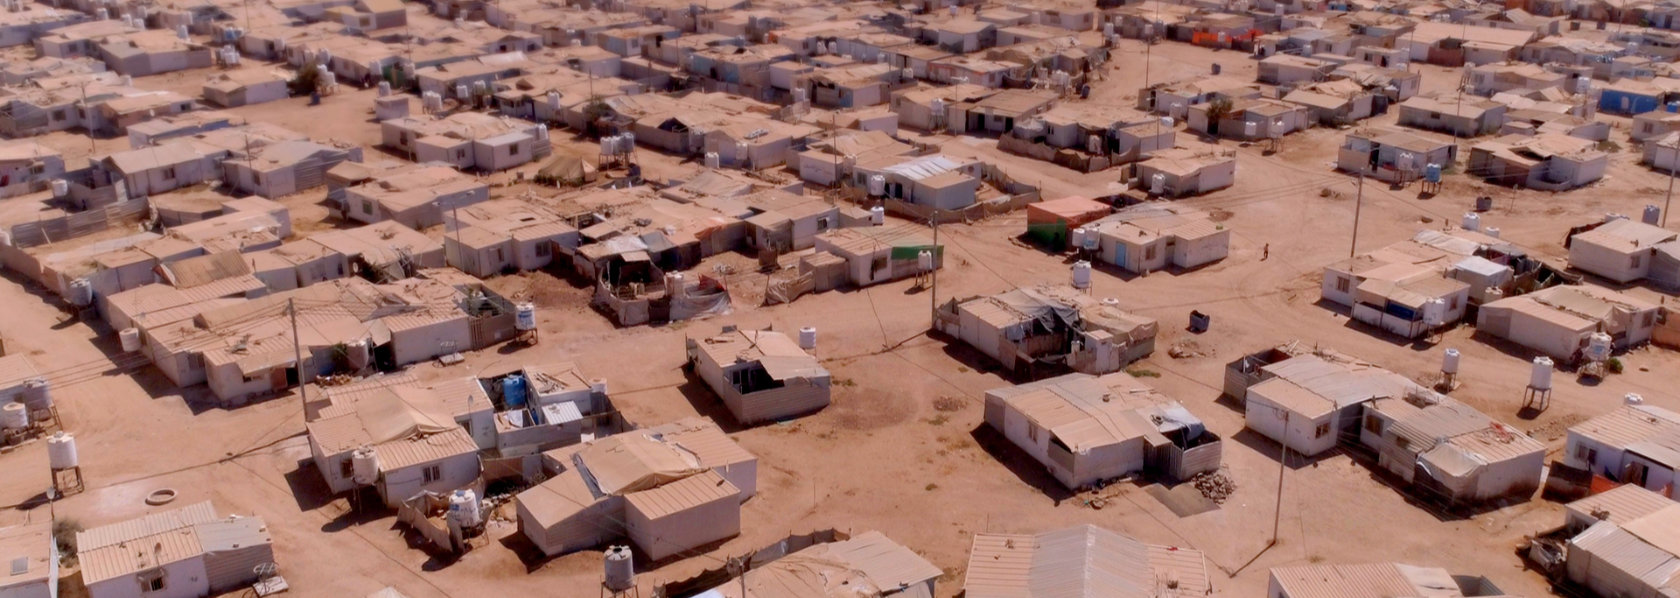 Aerial view of refugee camp in a desert - My Year of Living Mindfully - THIS Buddhist Film Festival